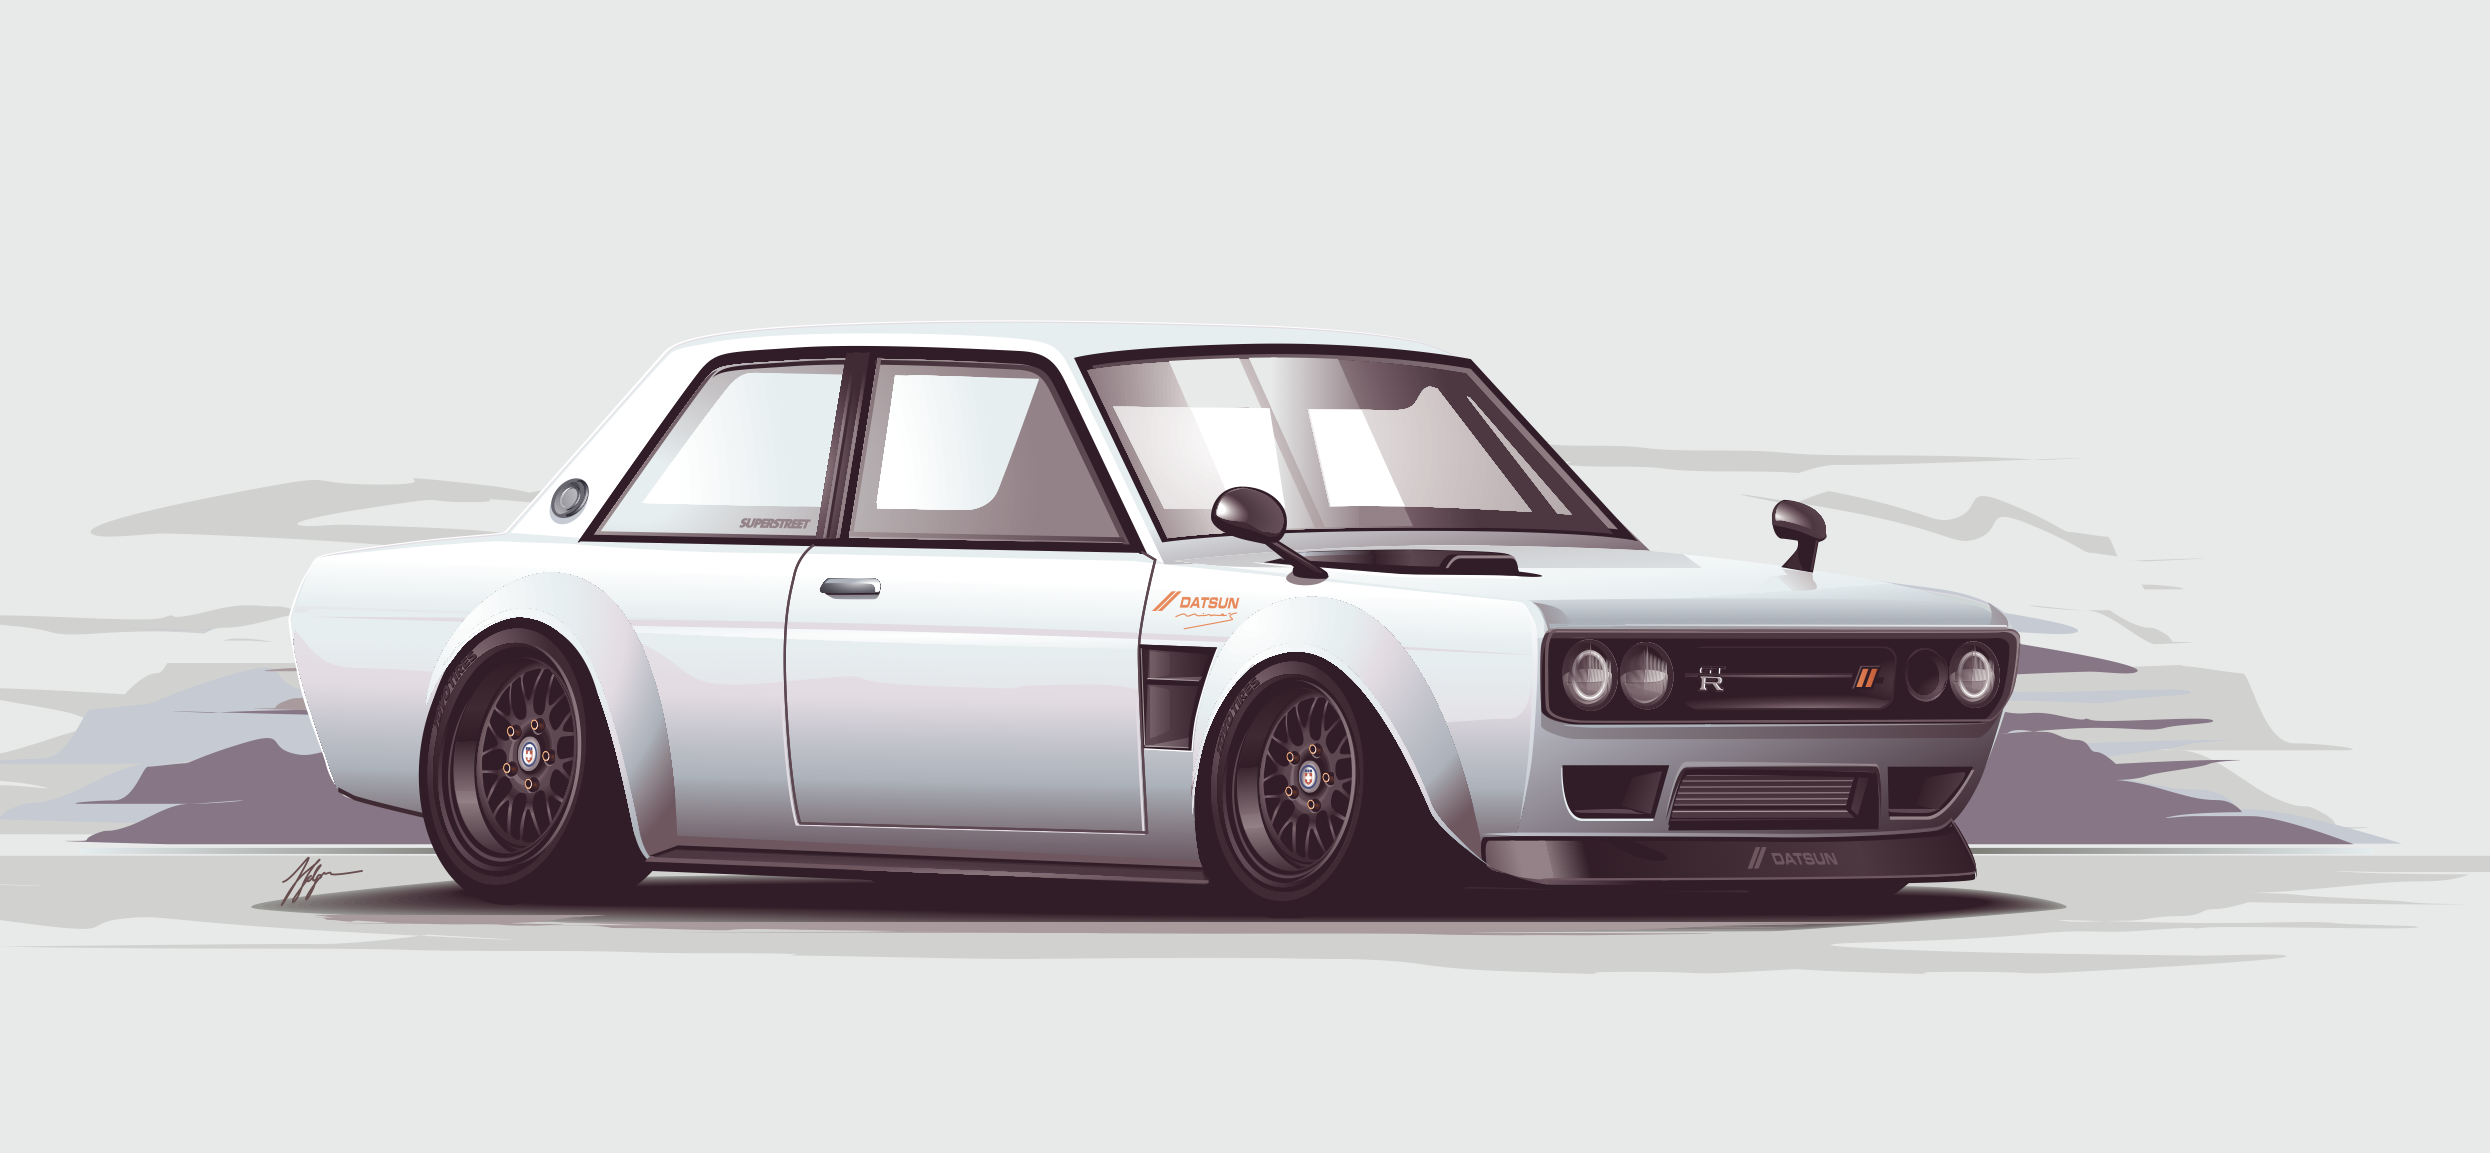 datsun 510 vector by depot-hdm